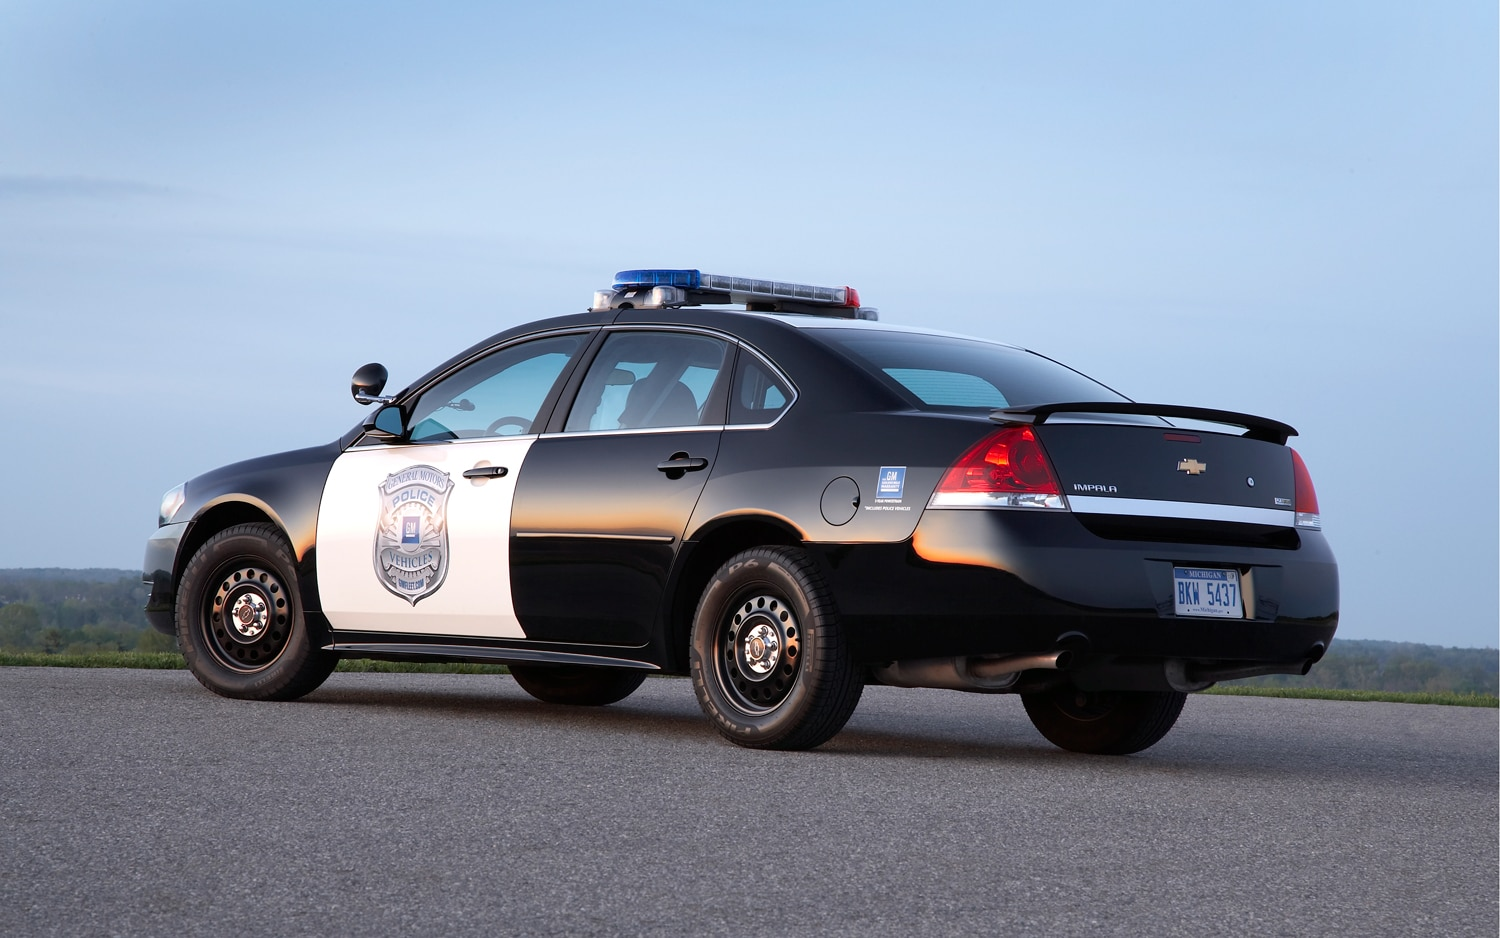 Upgraded 2012 Chevy Impala to Continue Serving as Police Car